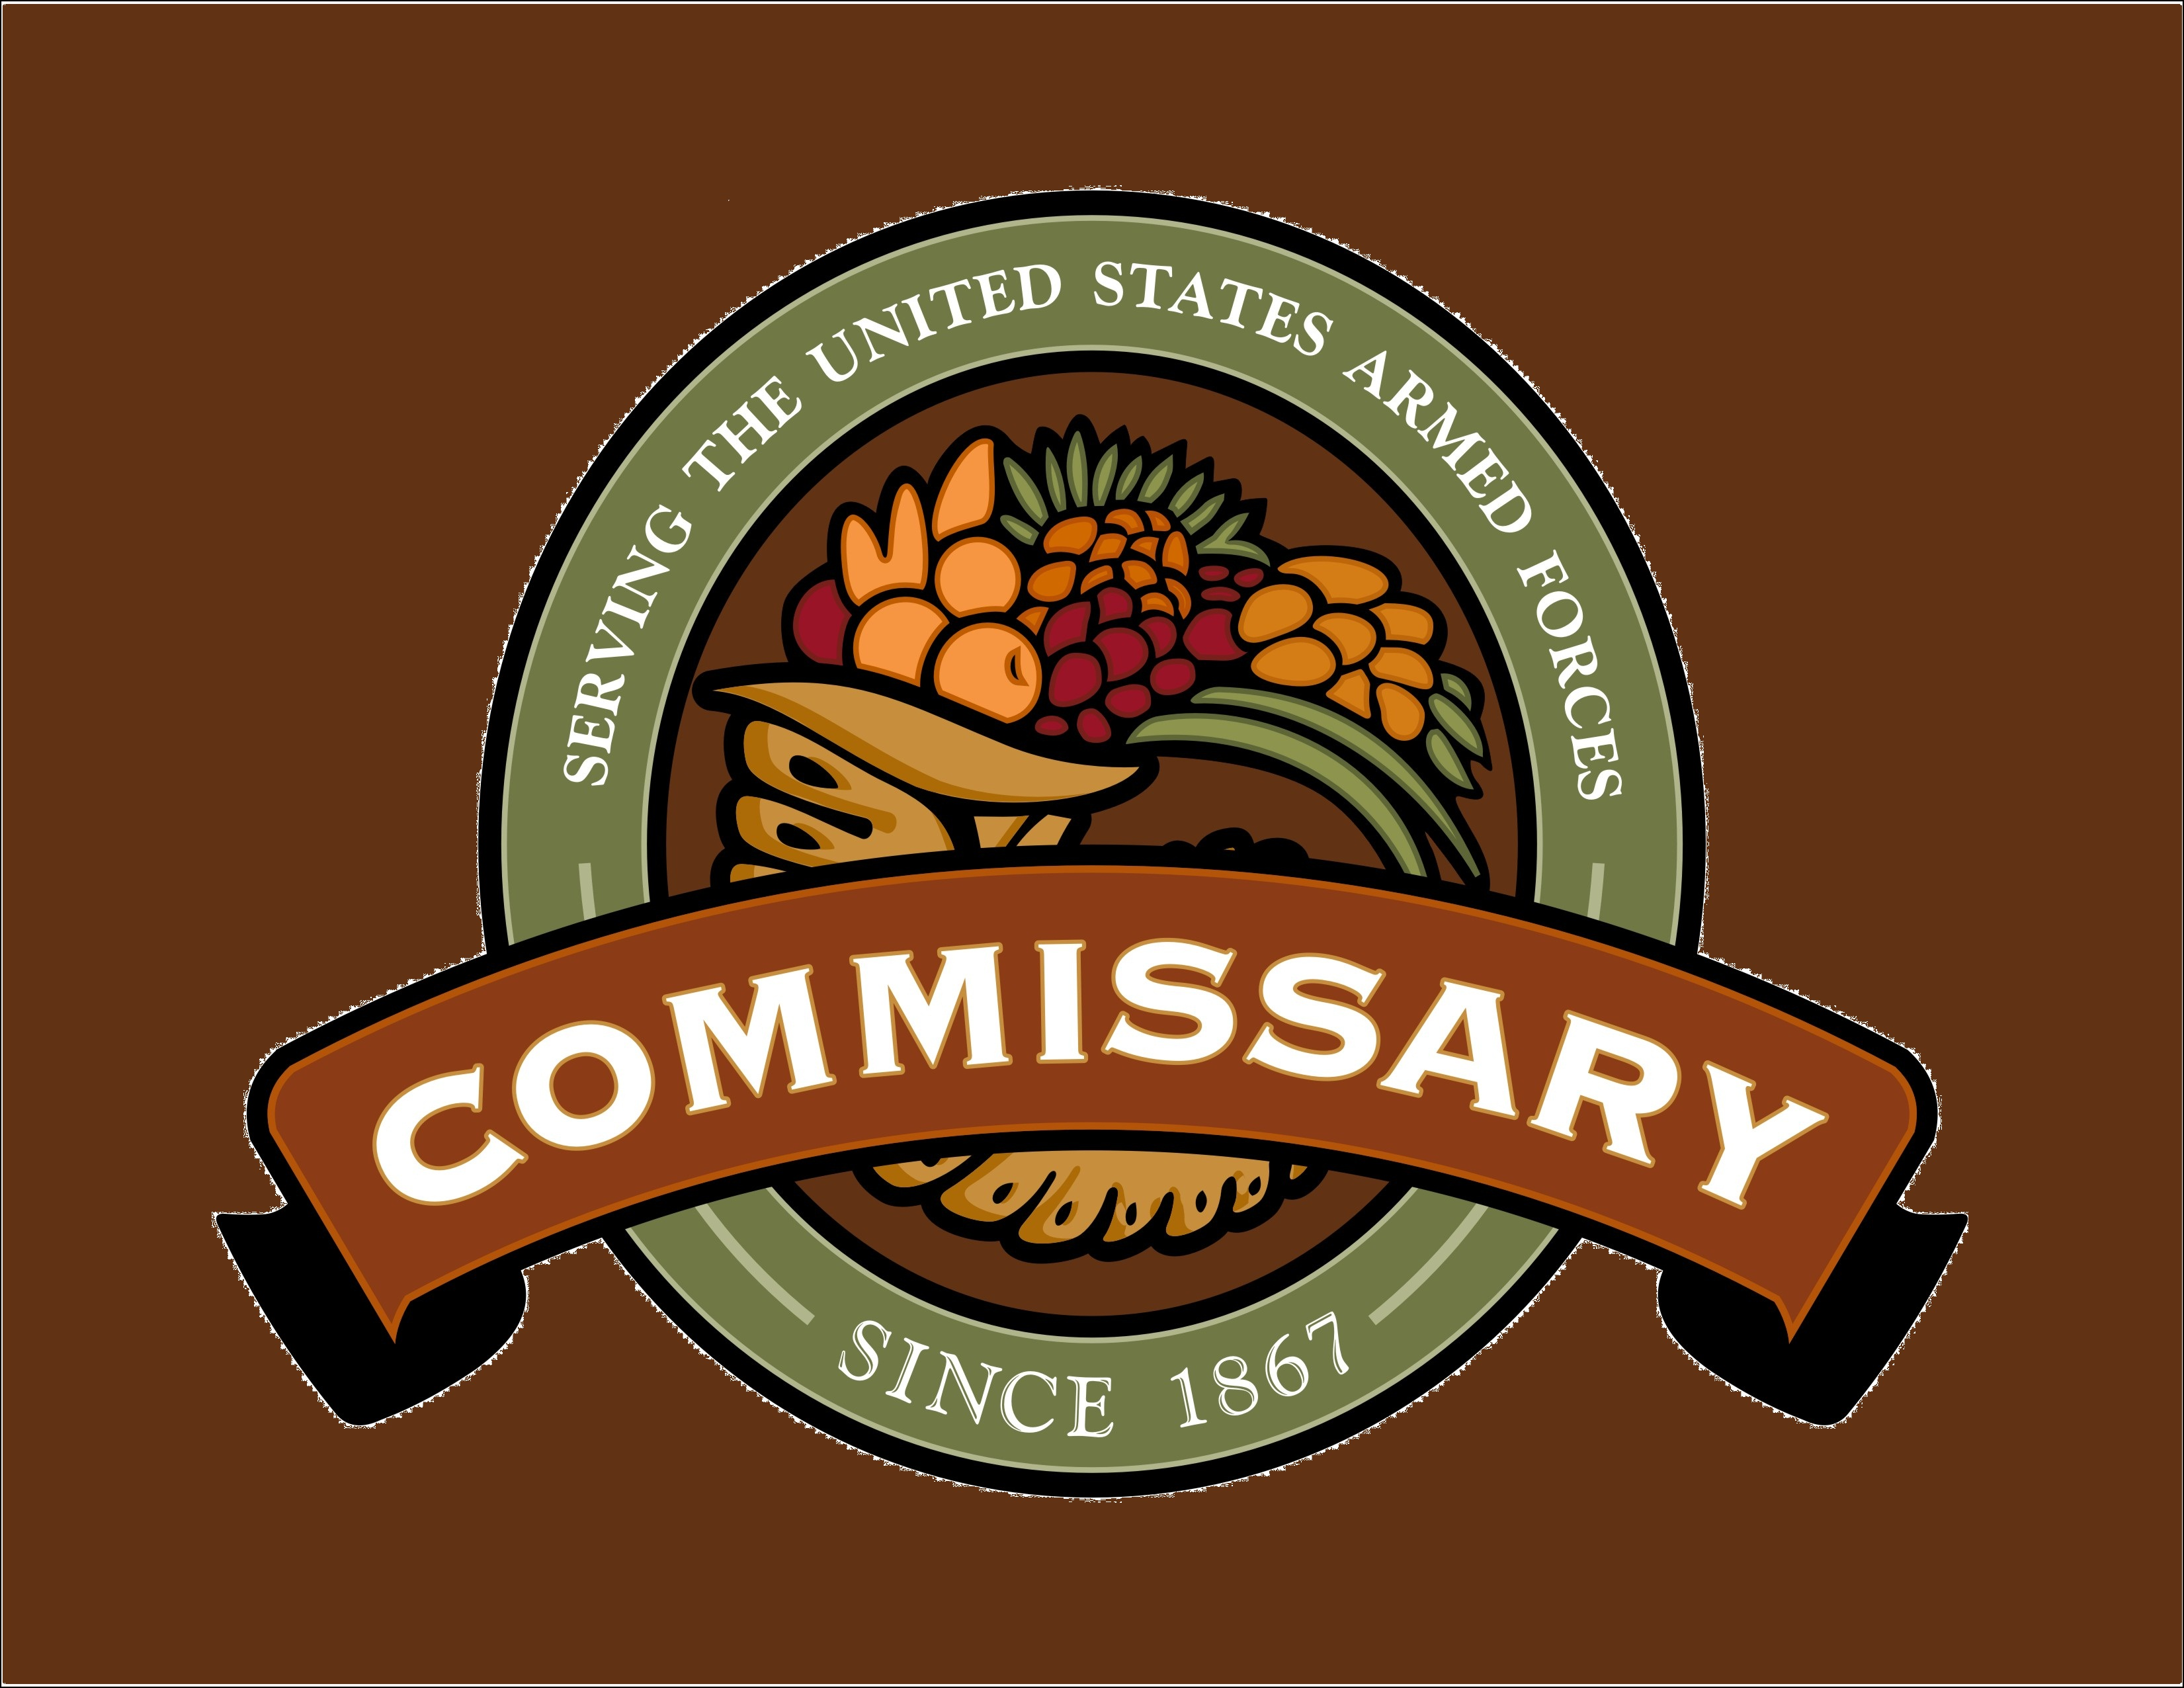 Overseas, remote stateside commissaries to remain open during government shutdown